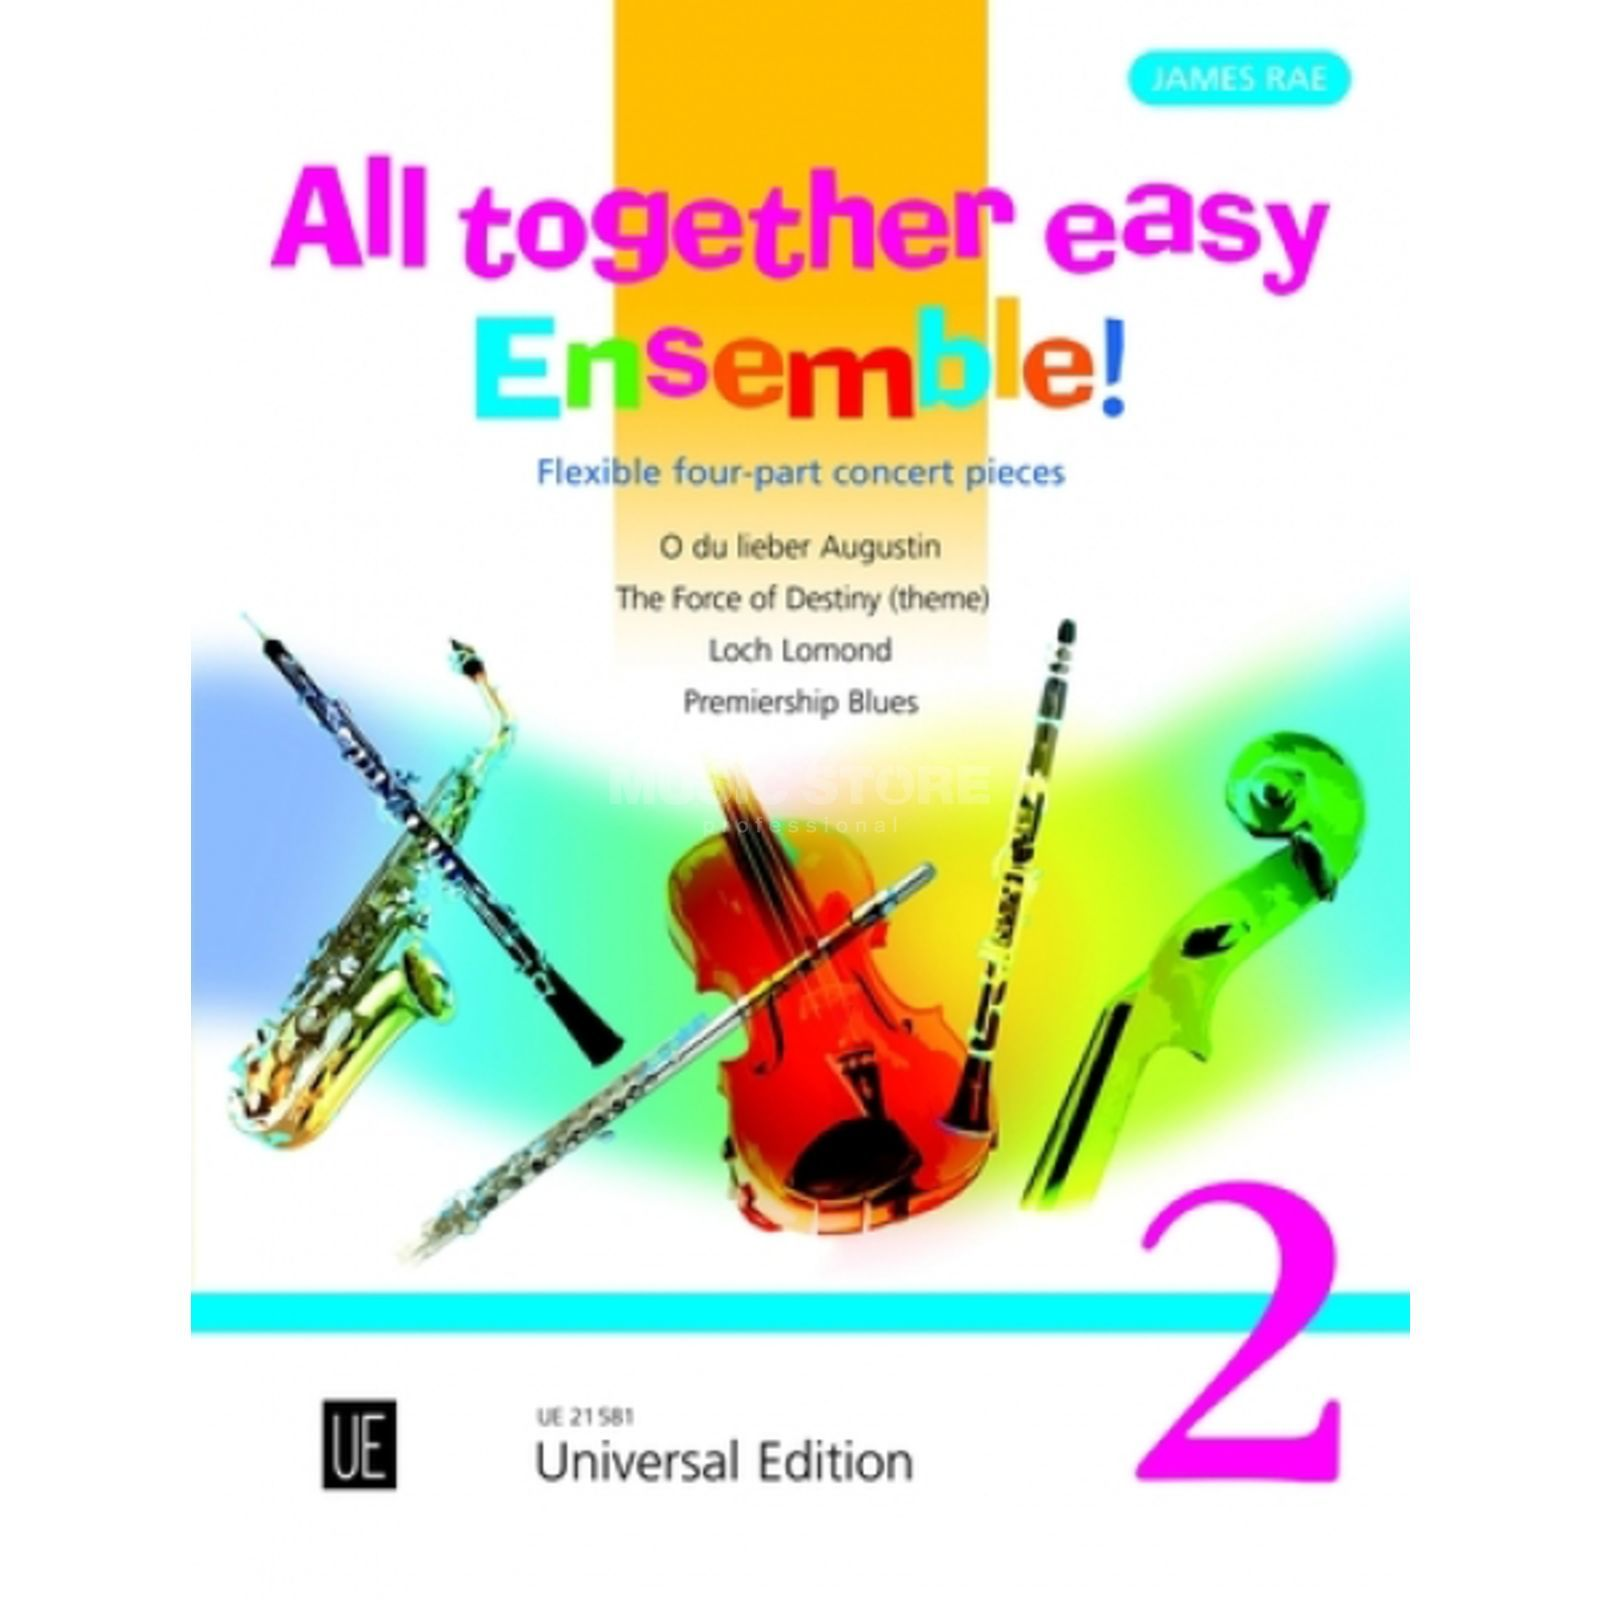 Universal Edition All together easy Ensemble! 2 James Rae, Partitur/Stimmen Produktbillede